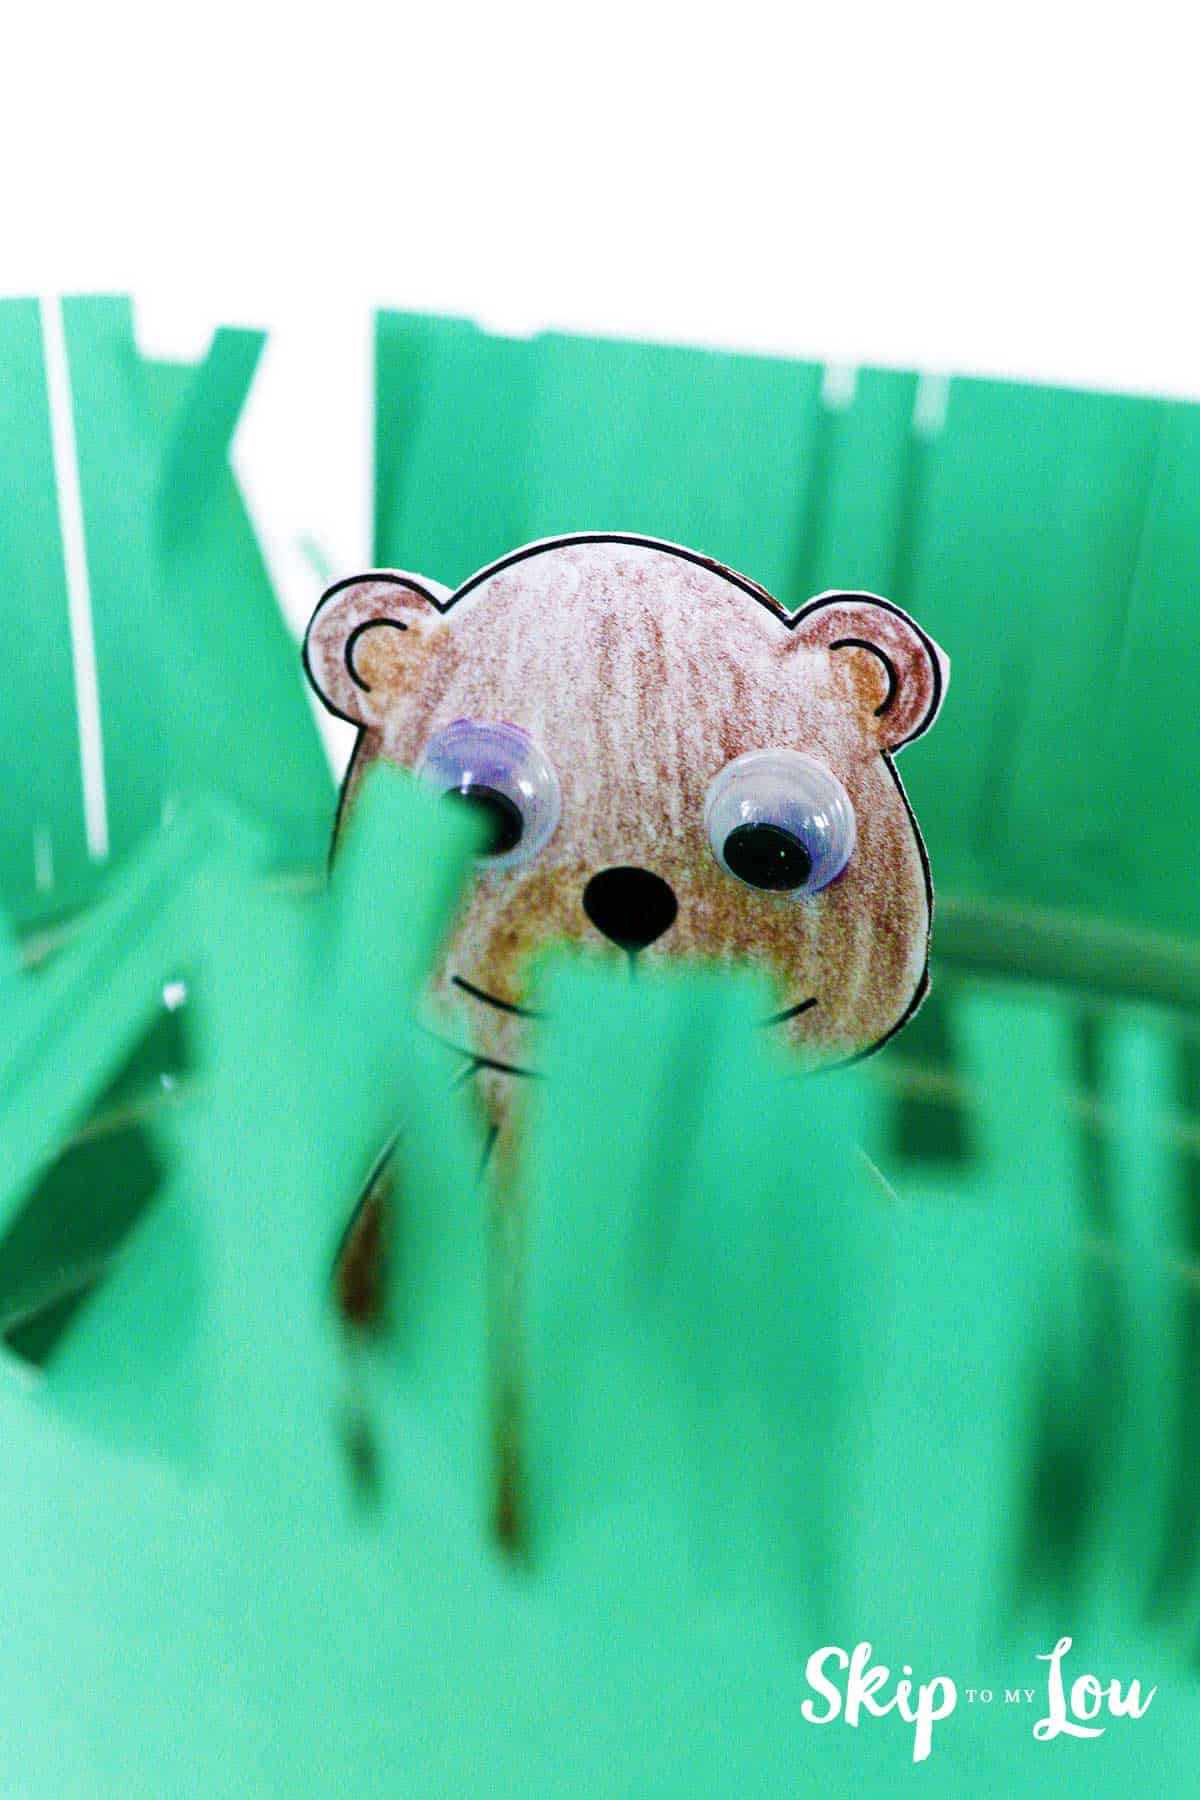 groundhog peeking through the green paper of the cup